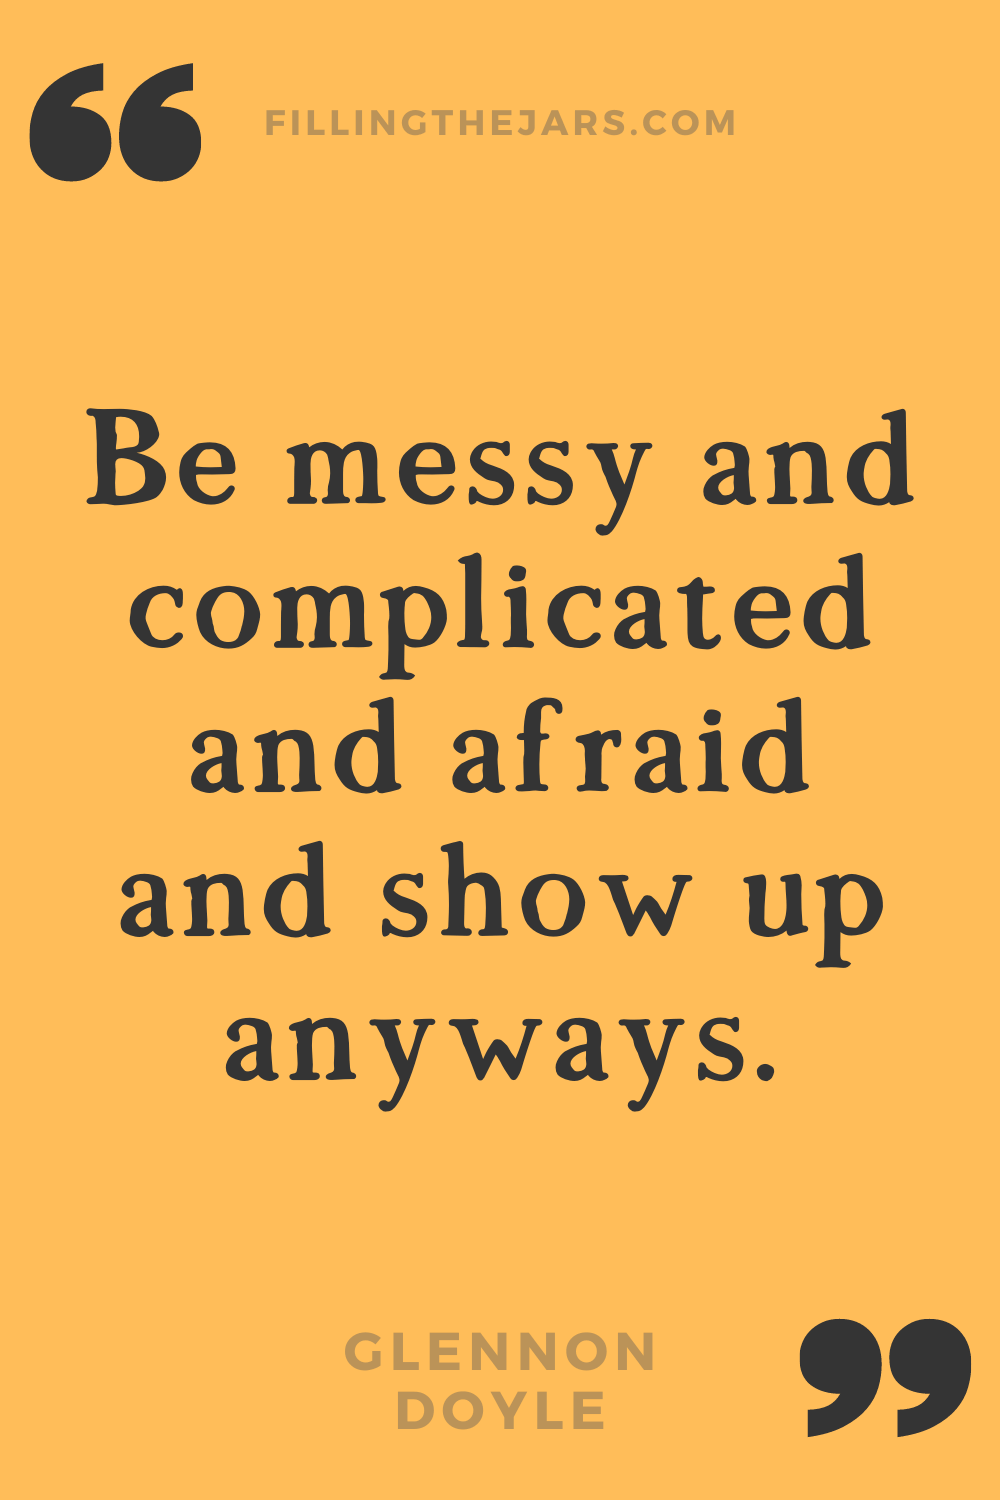 Glennon Doyle be messy motivational quote for women in black text on orange background.